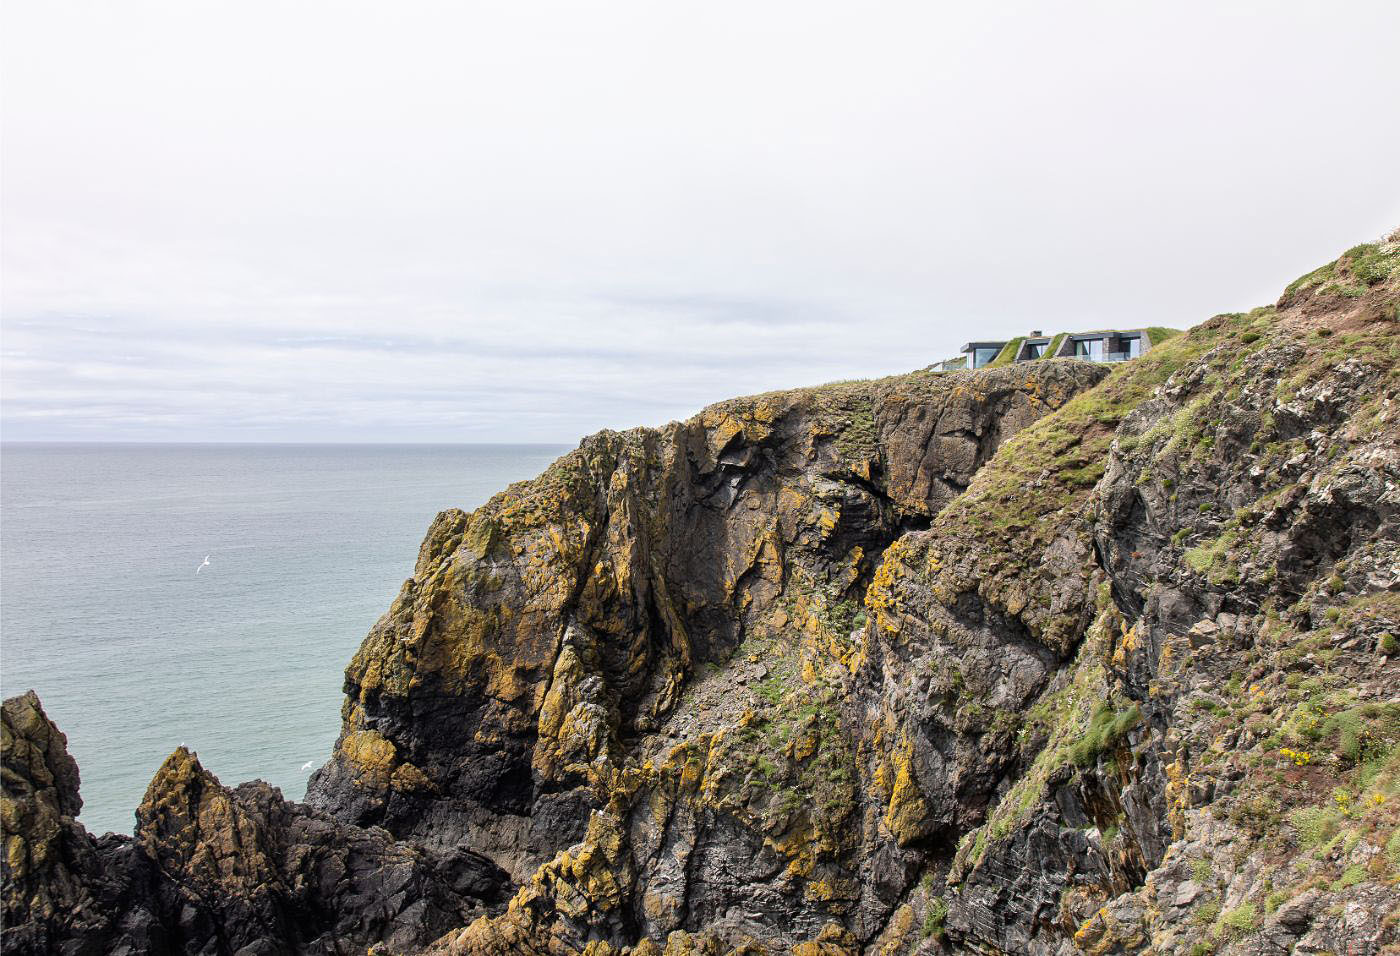 the property is then an expanse of glass overlooking the Irish Sea.